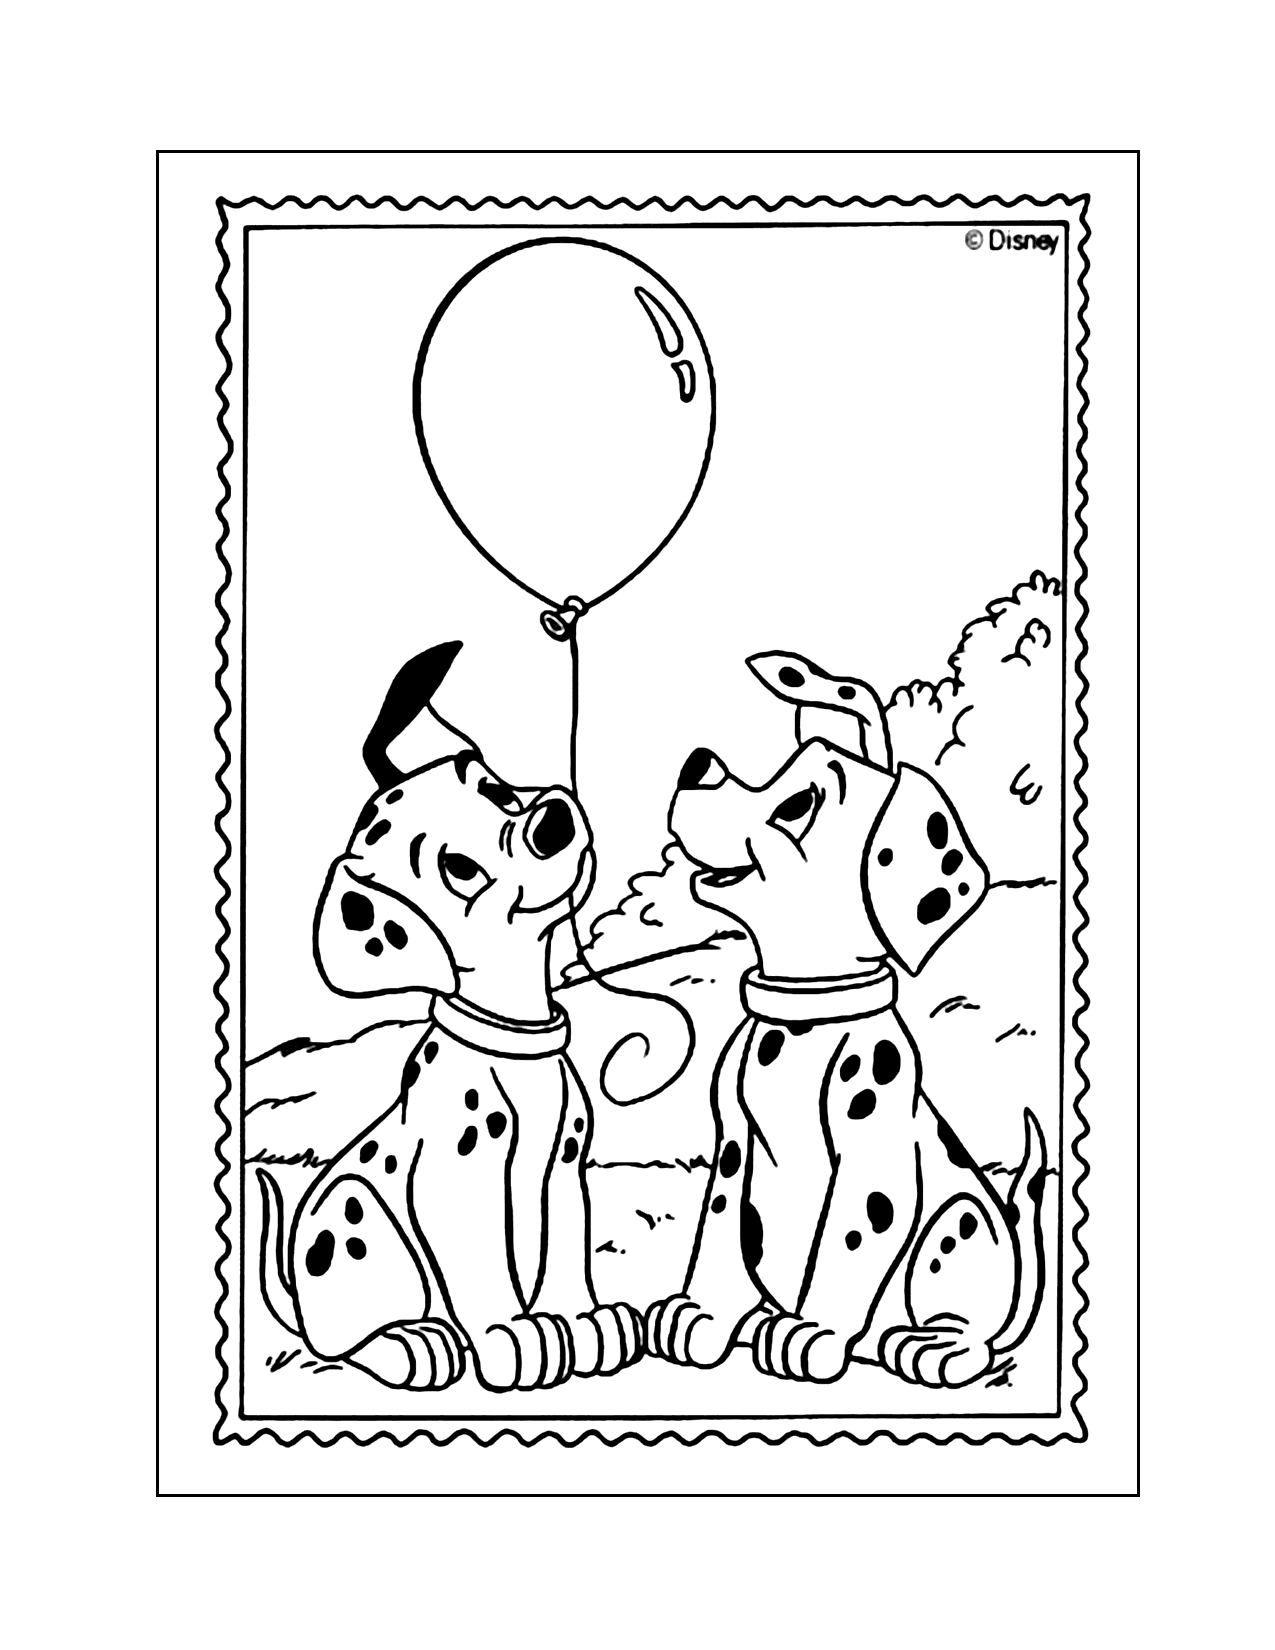 Dalmatian Puppies With A Balloon Coloring Page